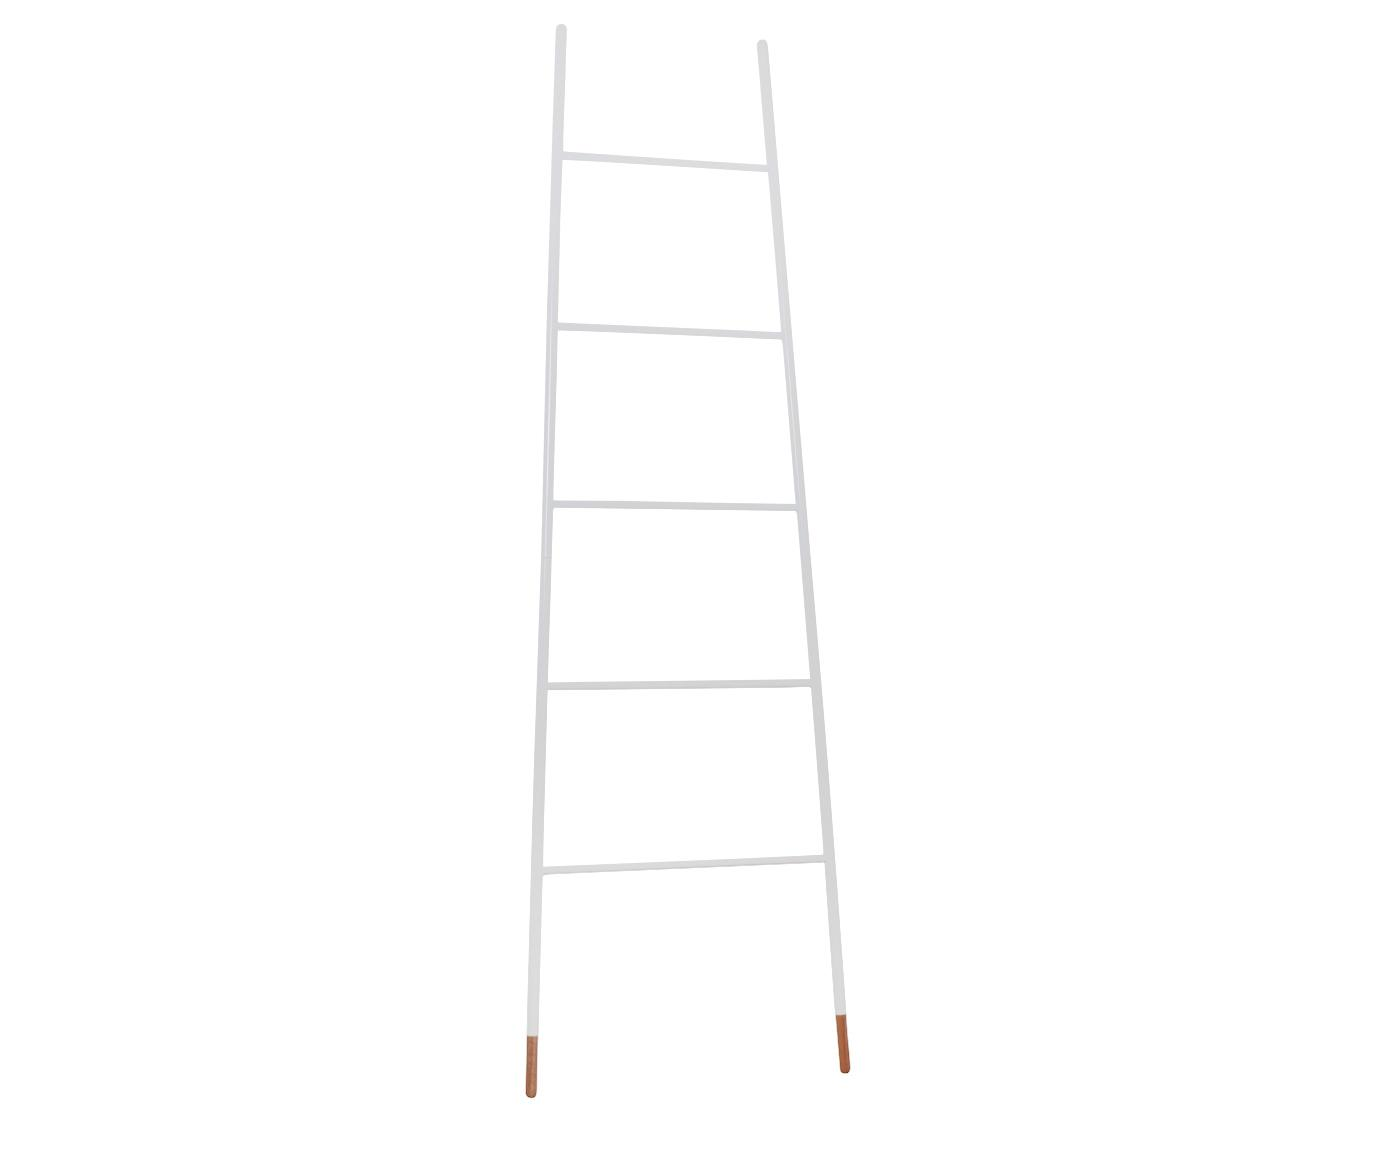 Escalera toallero Rack Ladder, Blanco, An 54 x Al 175 cm